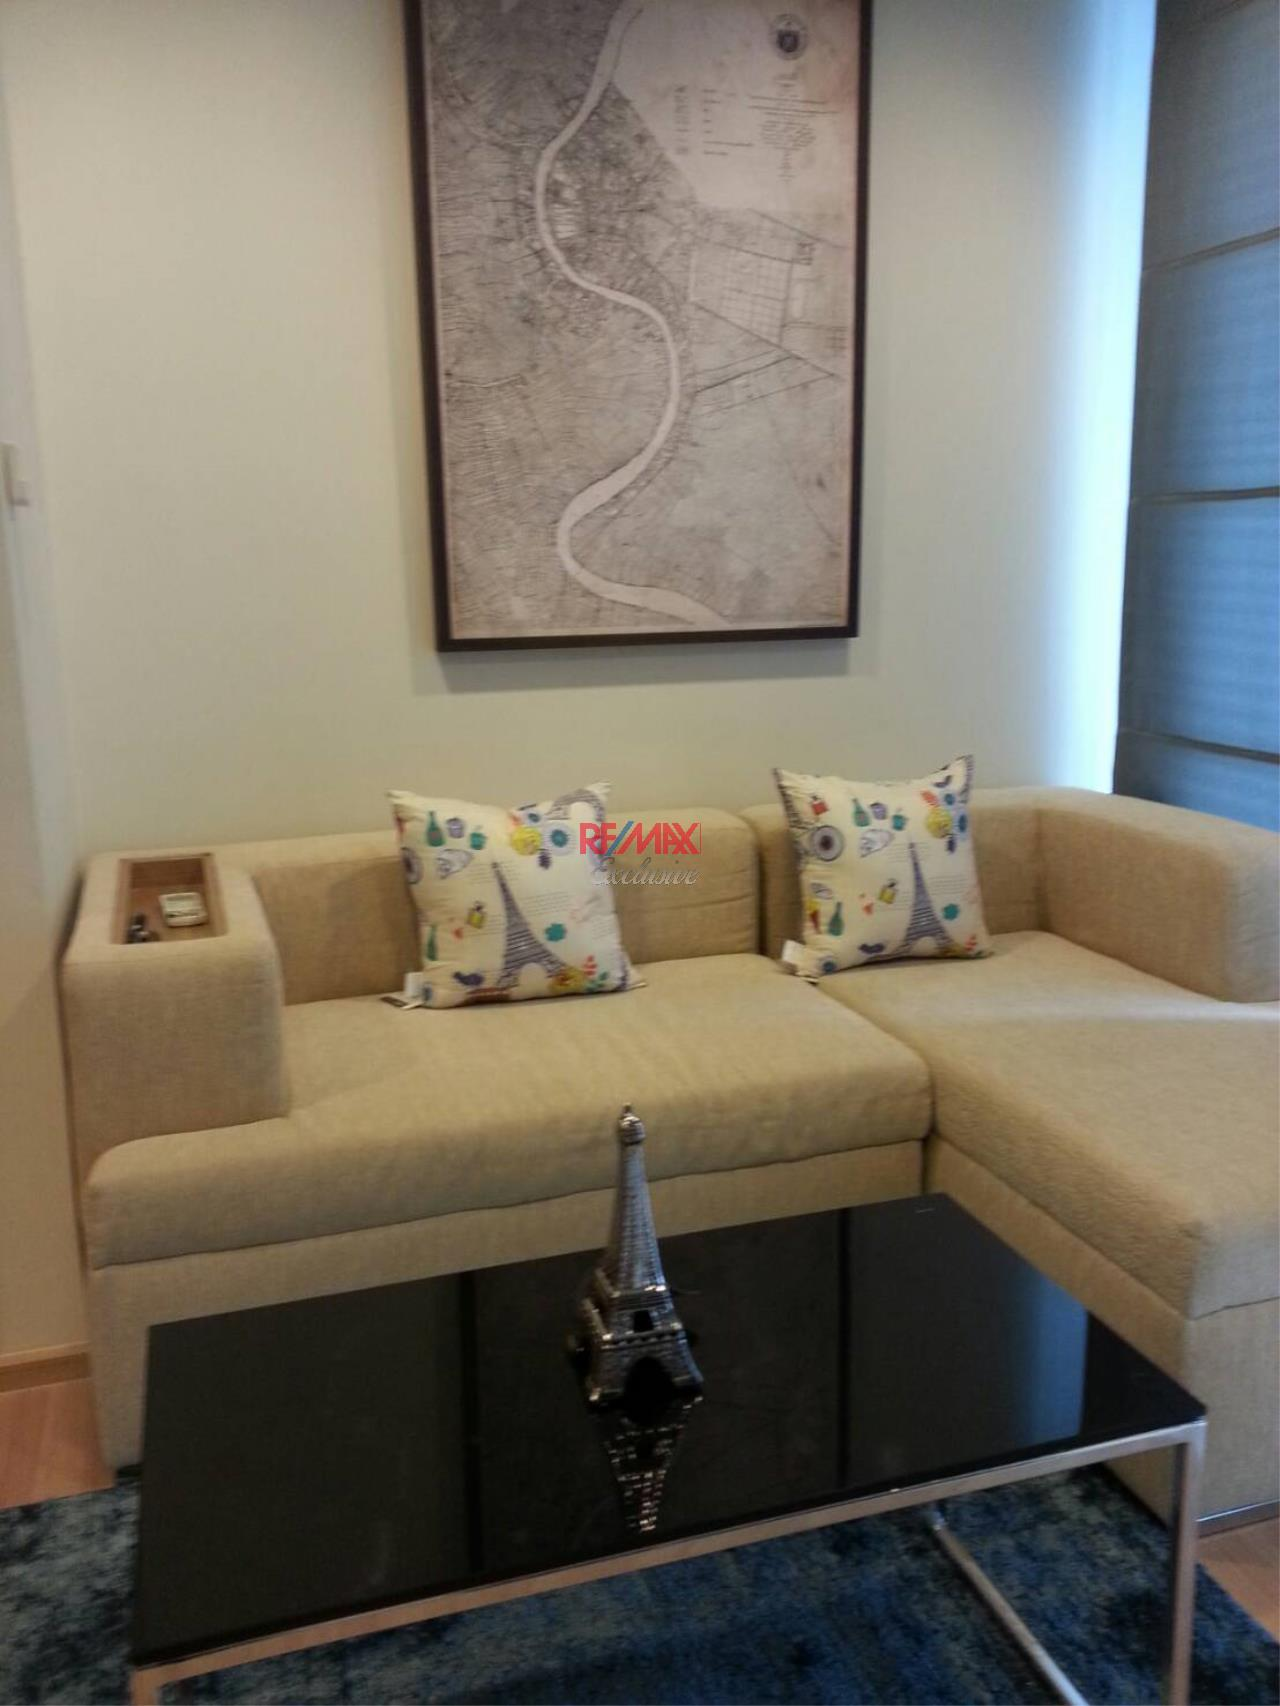 RE/MAX Exclusive Agency's Rhythm Sathorn 2 Bedrooms, 2 Bathrooms For Sale 10,500,000 THB, For Rent 42,000 THB 1